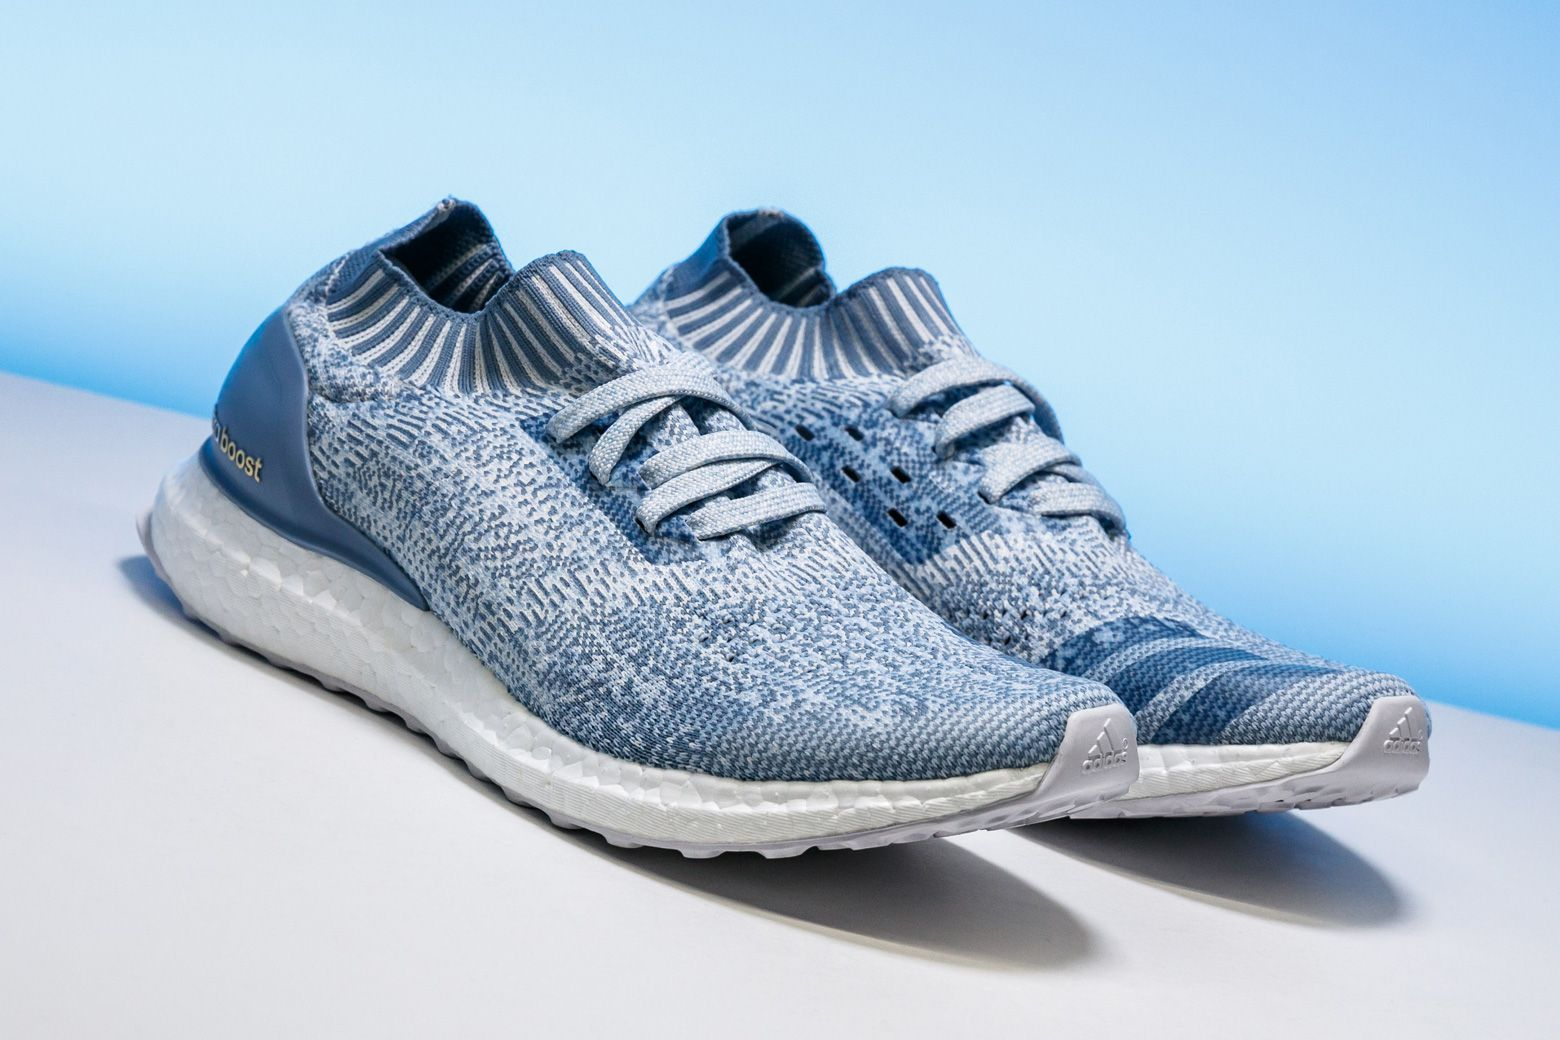 newest 35a4c e01b4 Once again, adidas delivers the Ultra Boost Uncaged in a sick colorway for  women.